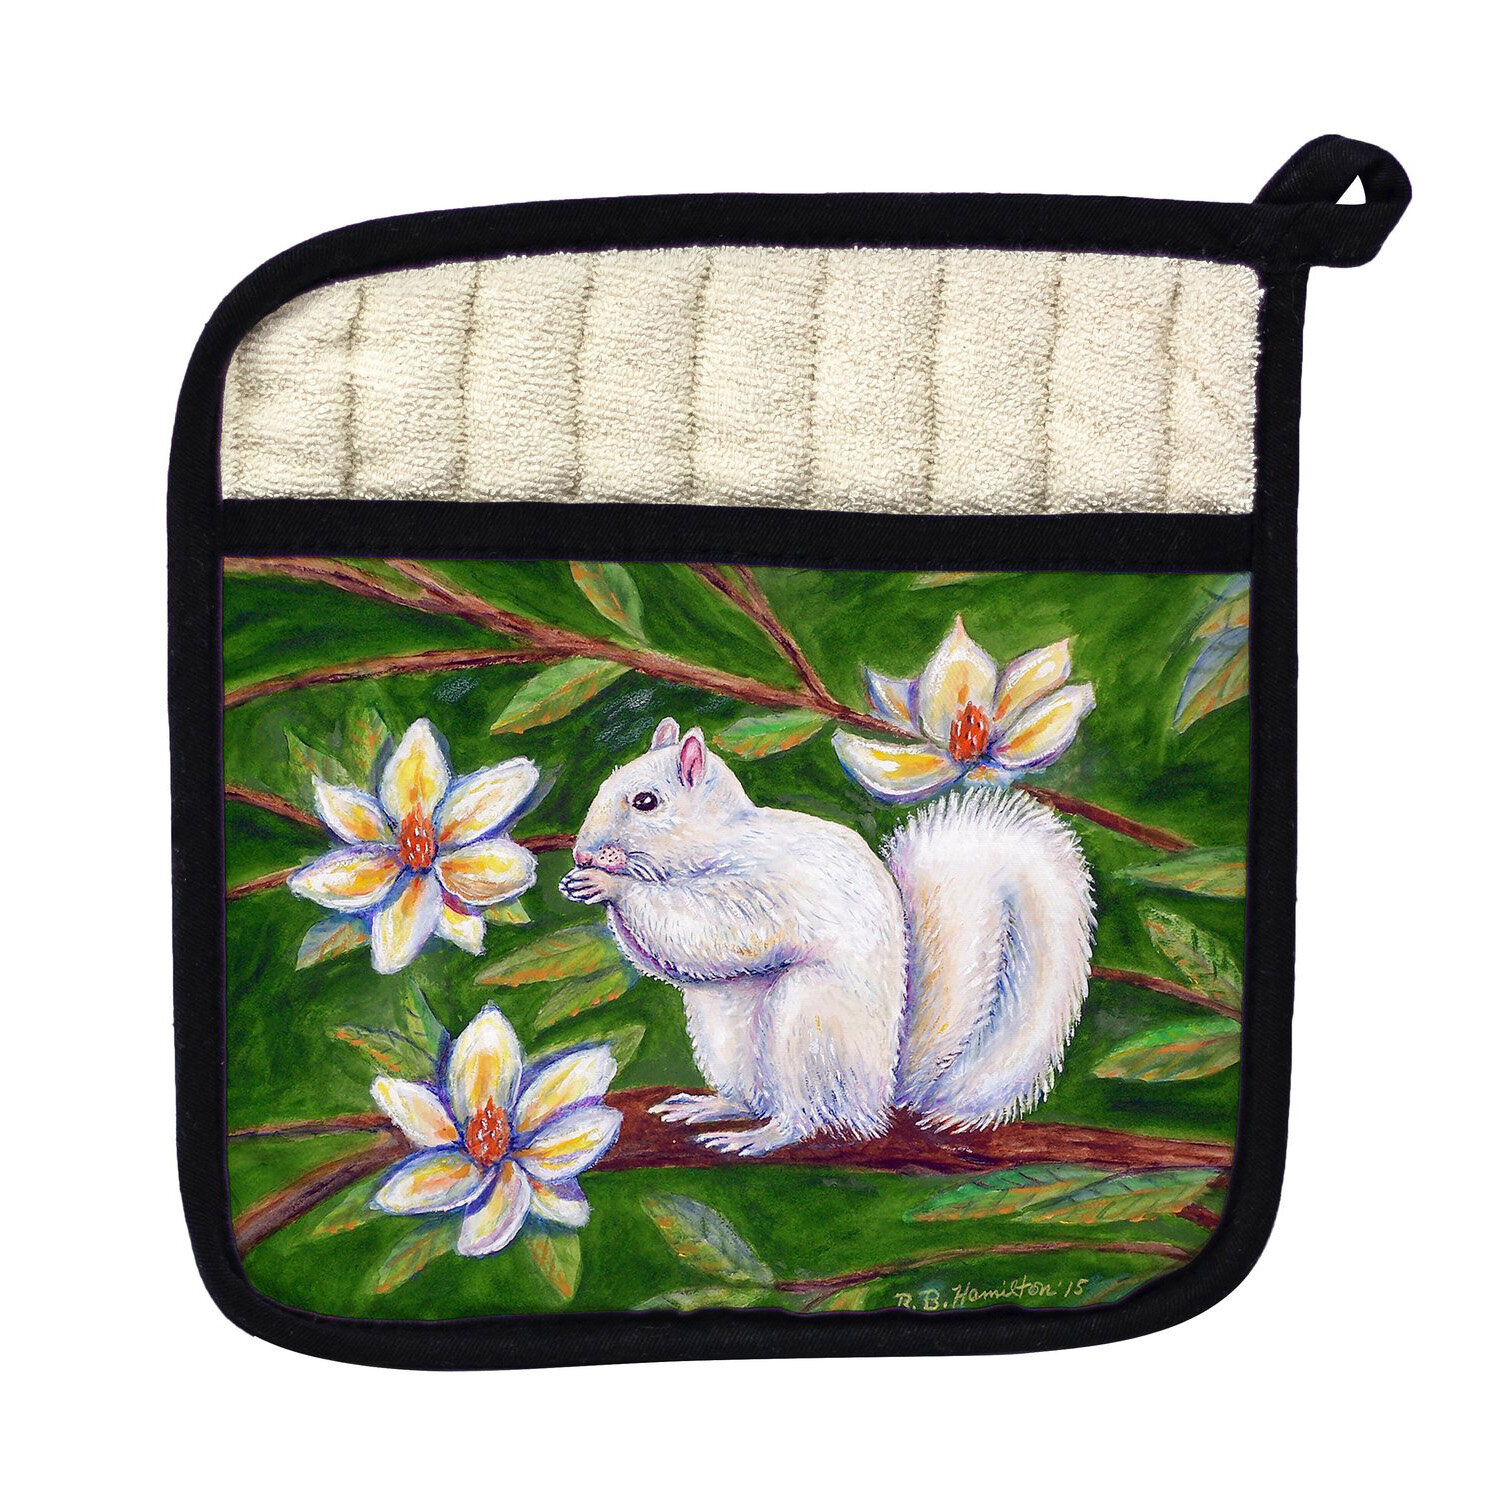 Betsy Drake Interiors Potholders Oven Mitts You Ll Love In 2021 Wayfair